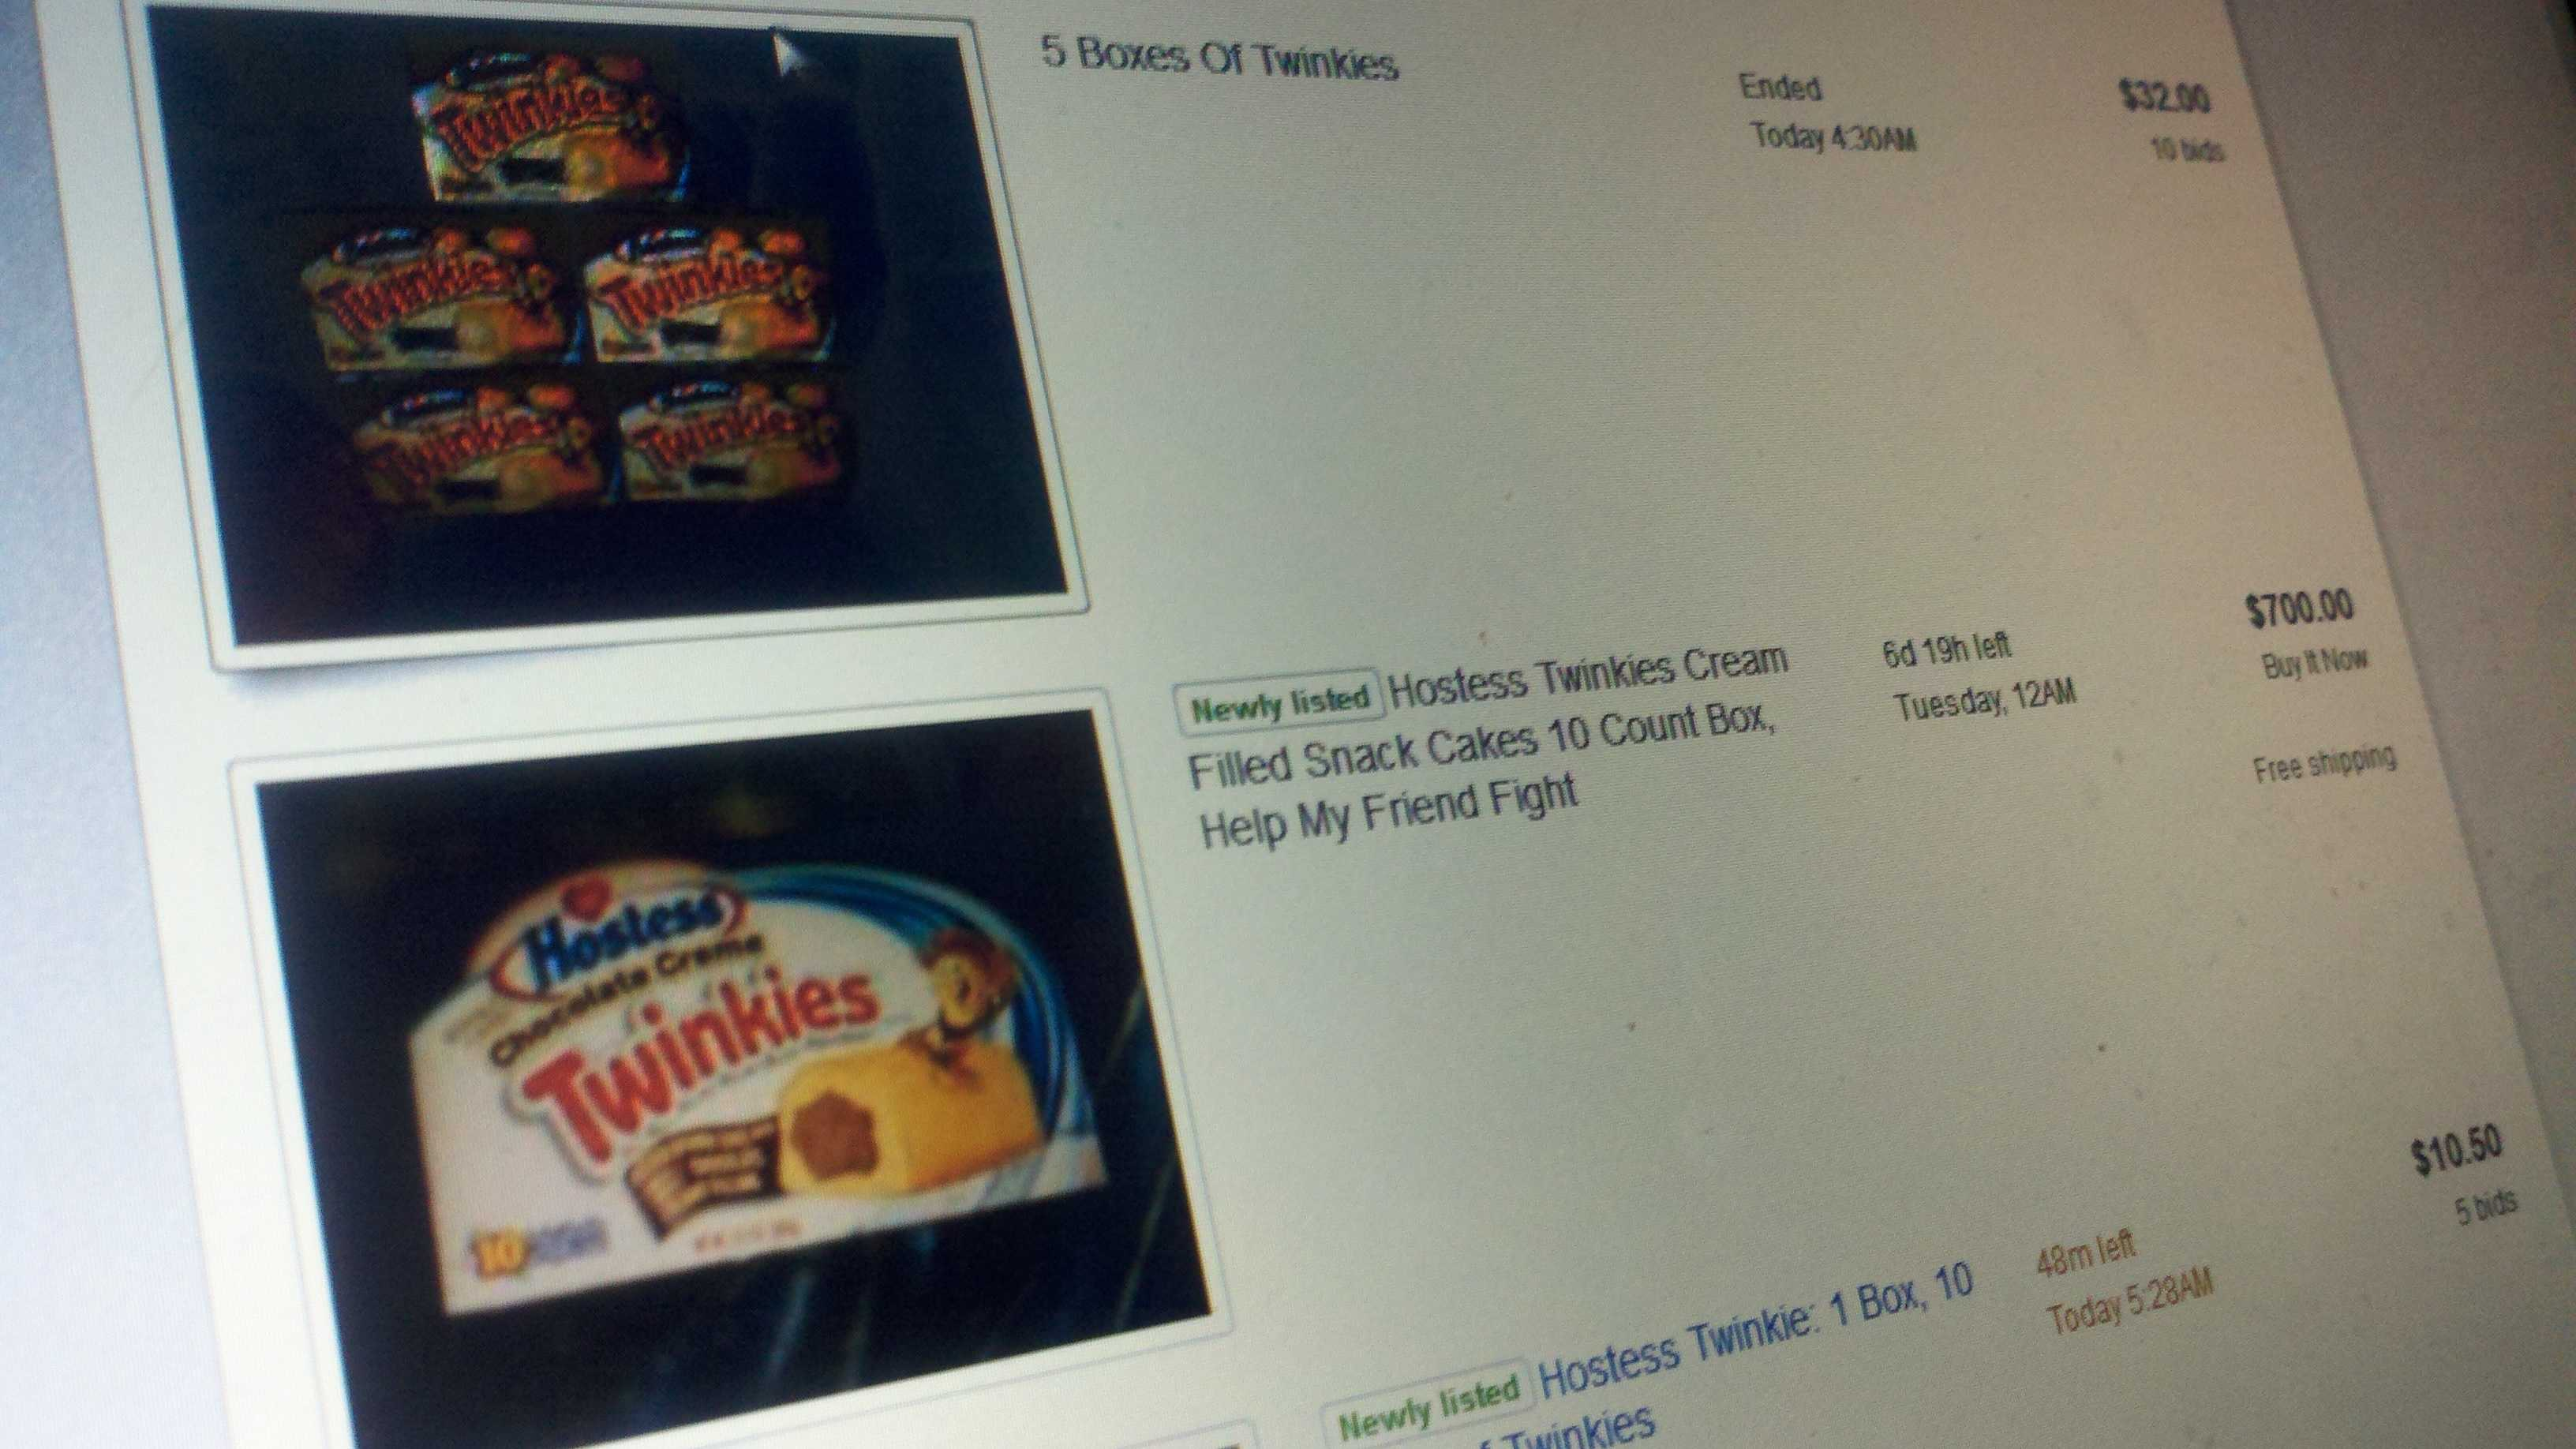 The secondary market for Twinkies has more than doubled the regular price for the Hostess treat.